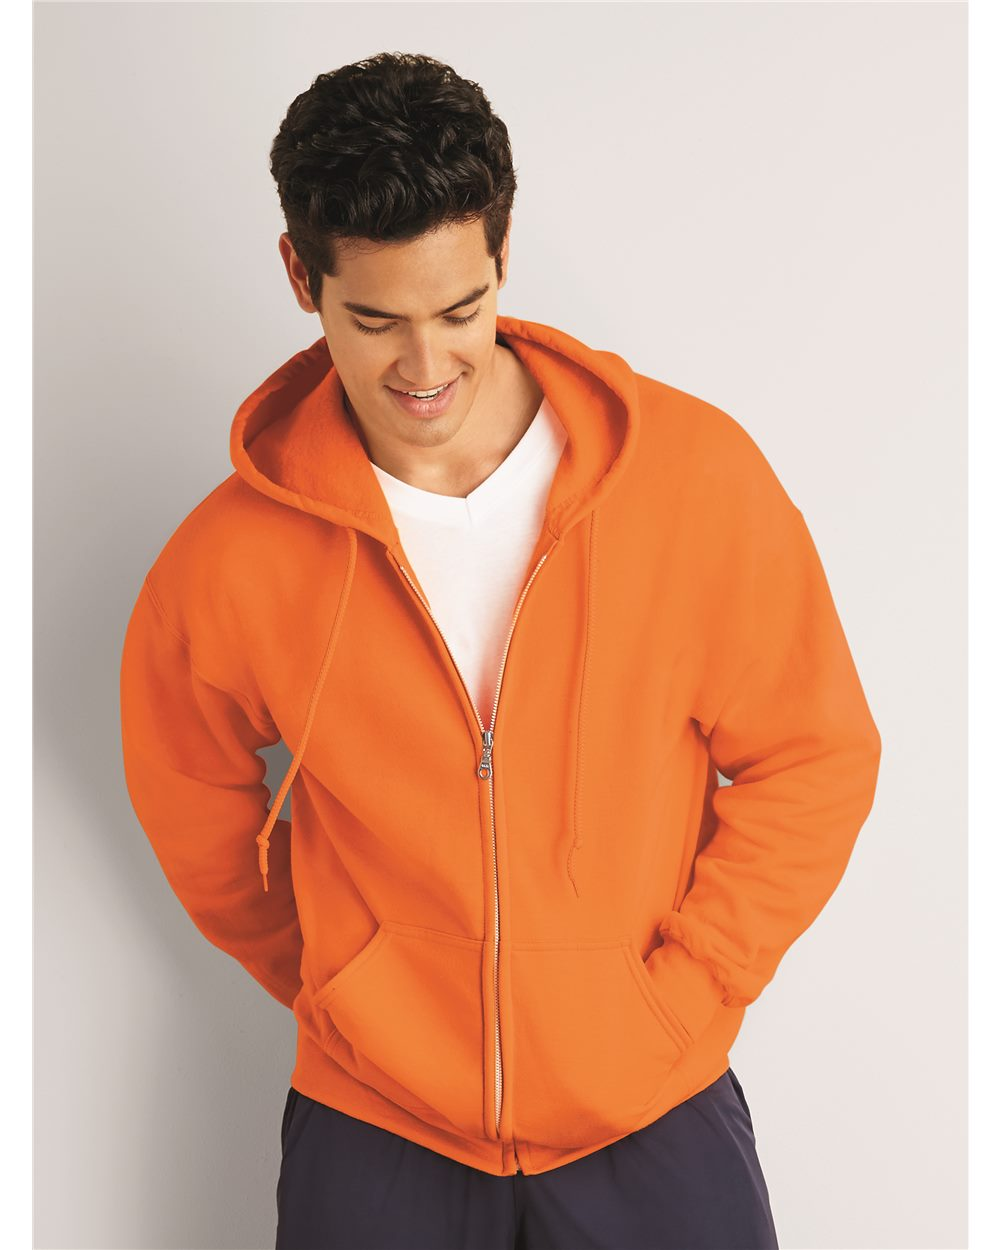 Gildan 12600  Ultra Blend Full Zip Hooded T-shirt.